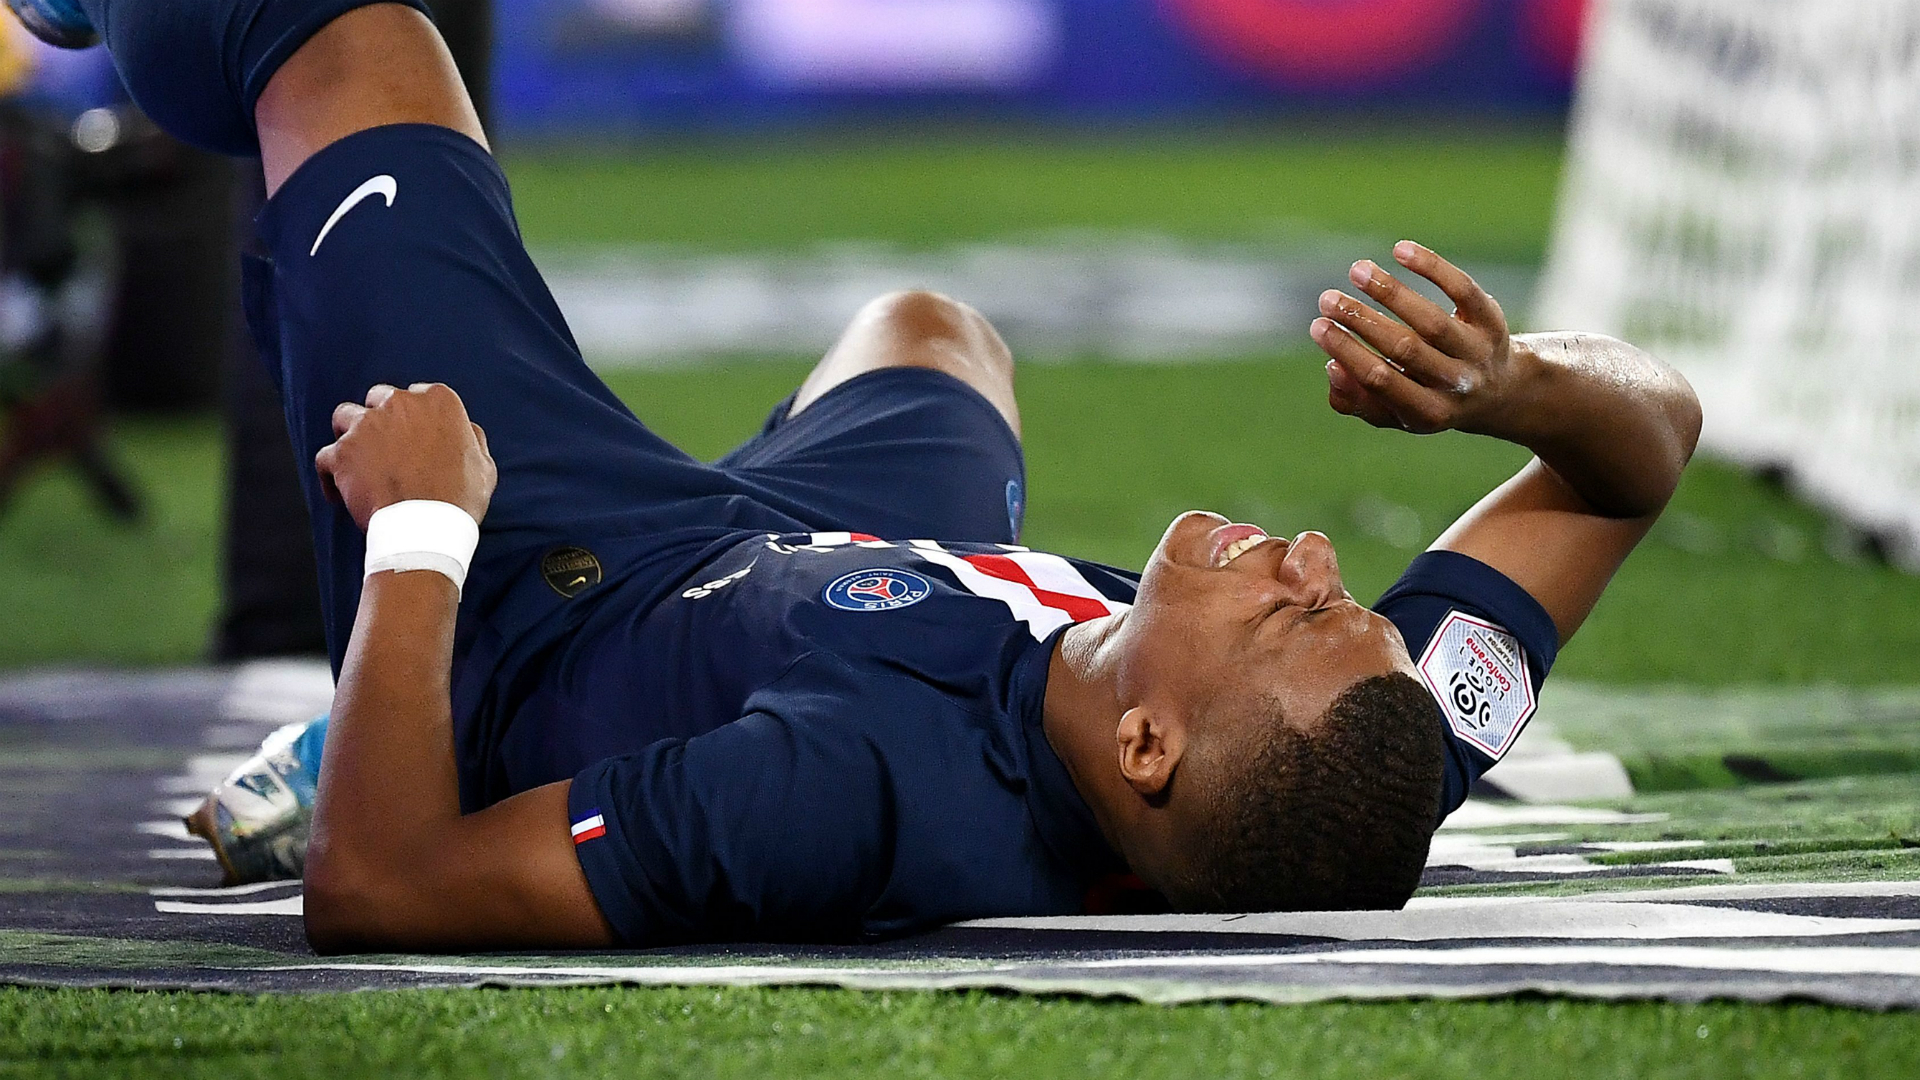 With PSG opening their Champions League campaign against Real Madrid next week, Kylian Mbappe is not yet back in training.